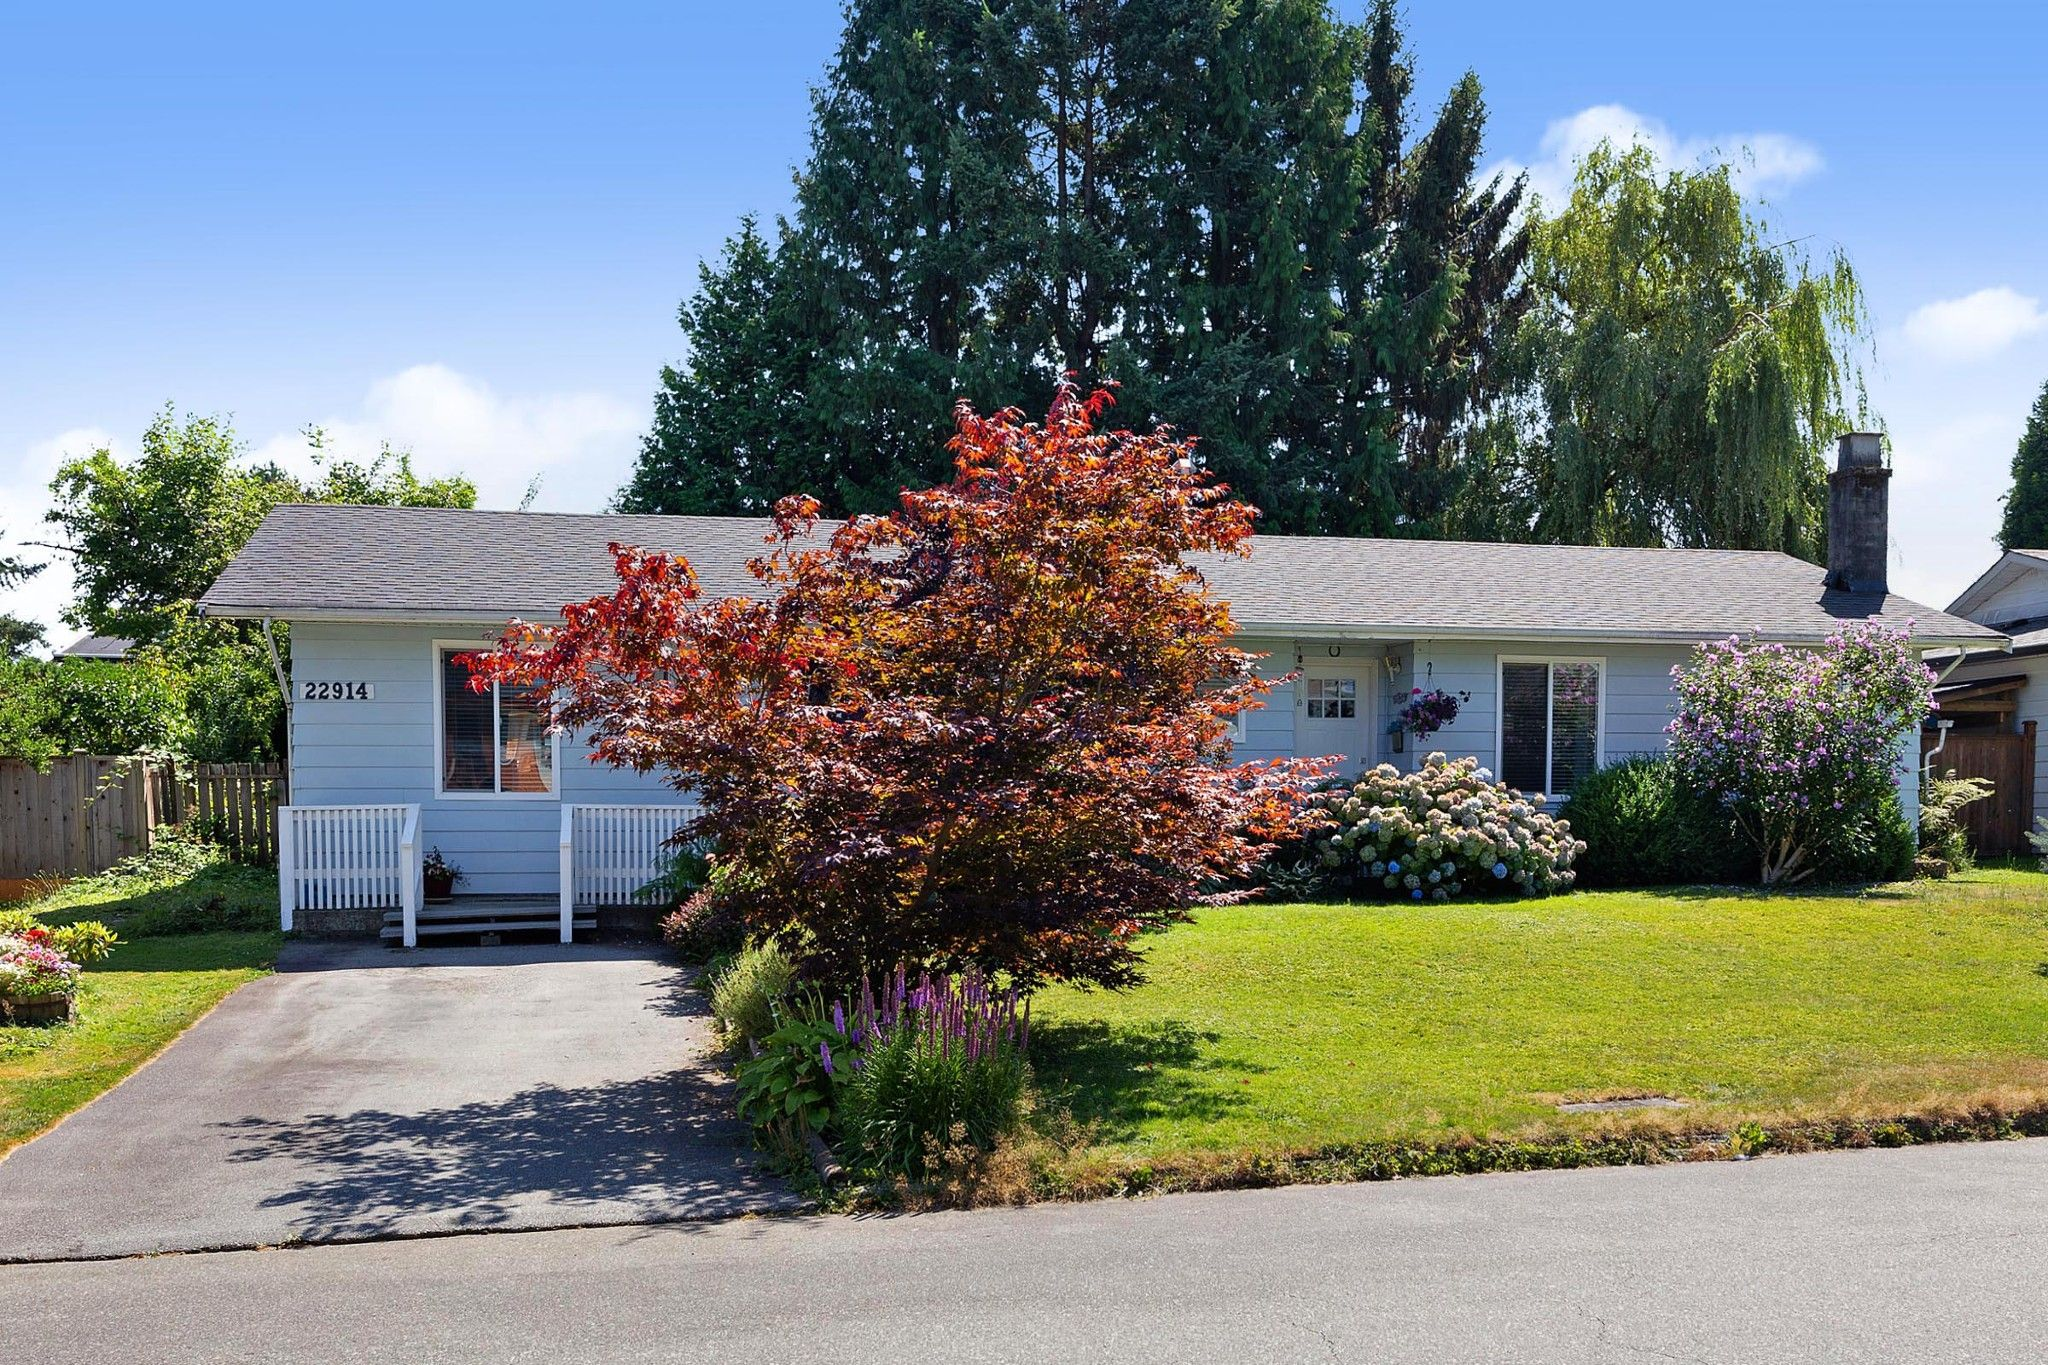 Main Photo: 22914 STOREY Avenue in Maple Ridge: East Central House for sale : MLS®# R2484029